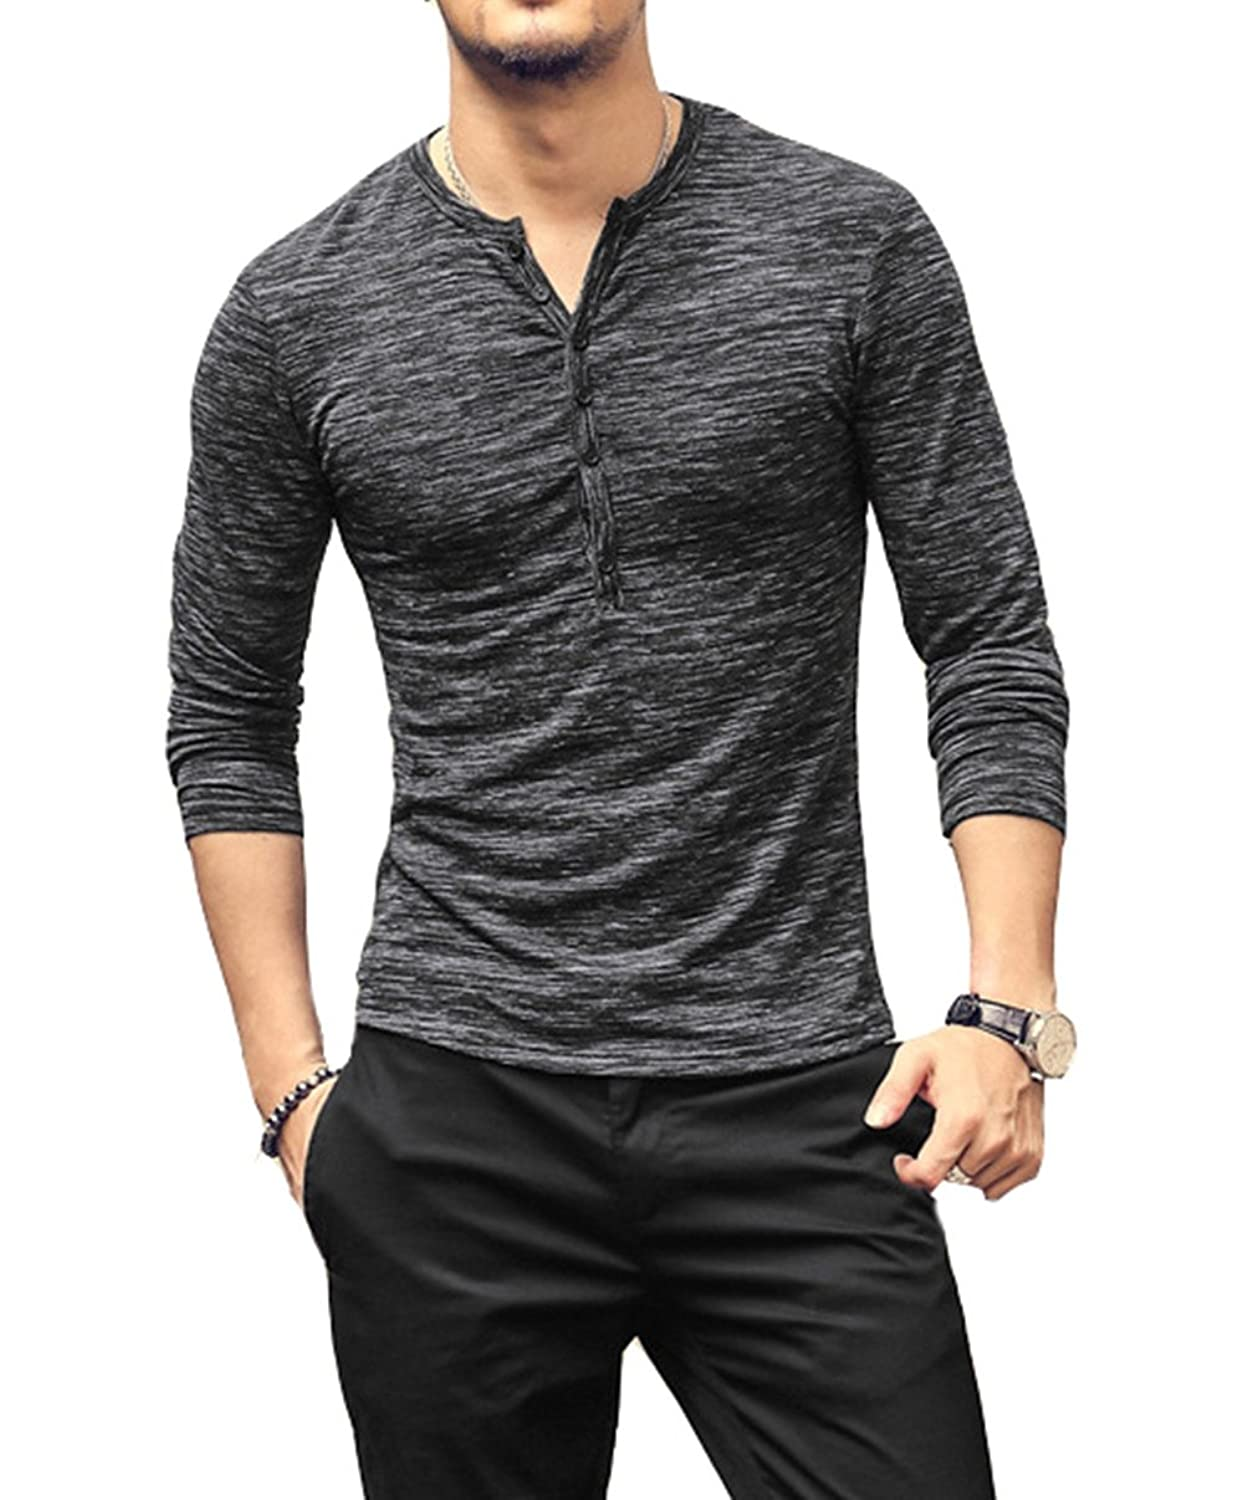 Aitfineism Mens Casual Slim Fit Basic Henley Long Sleeve T Shirt by Aitfineism